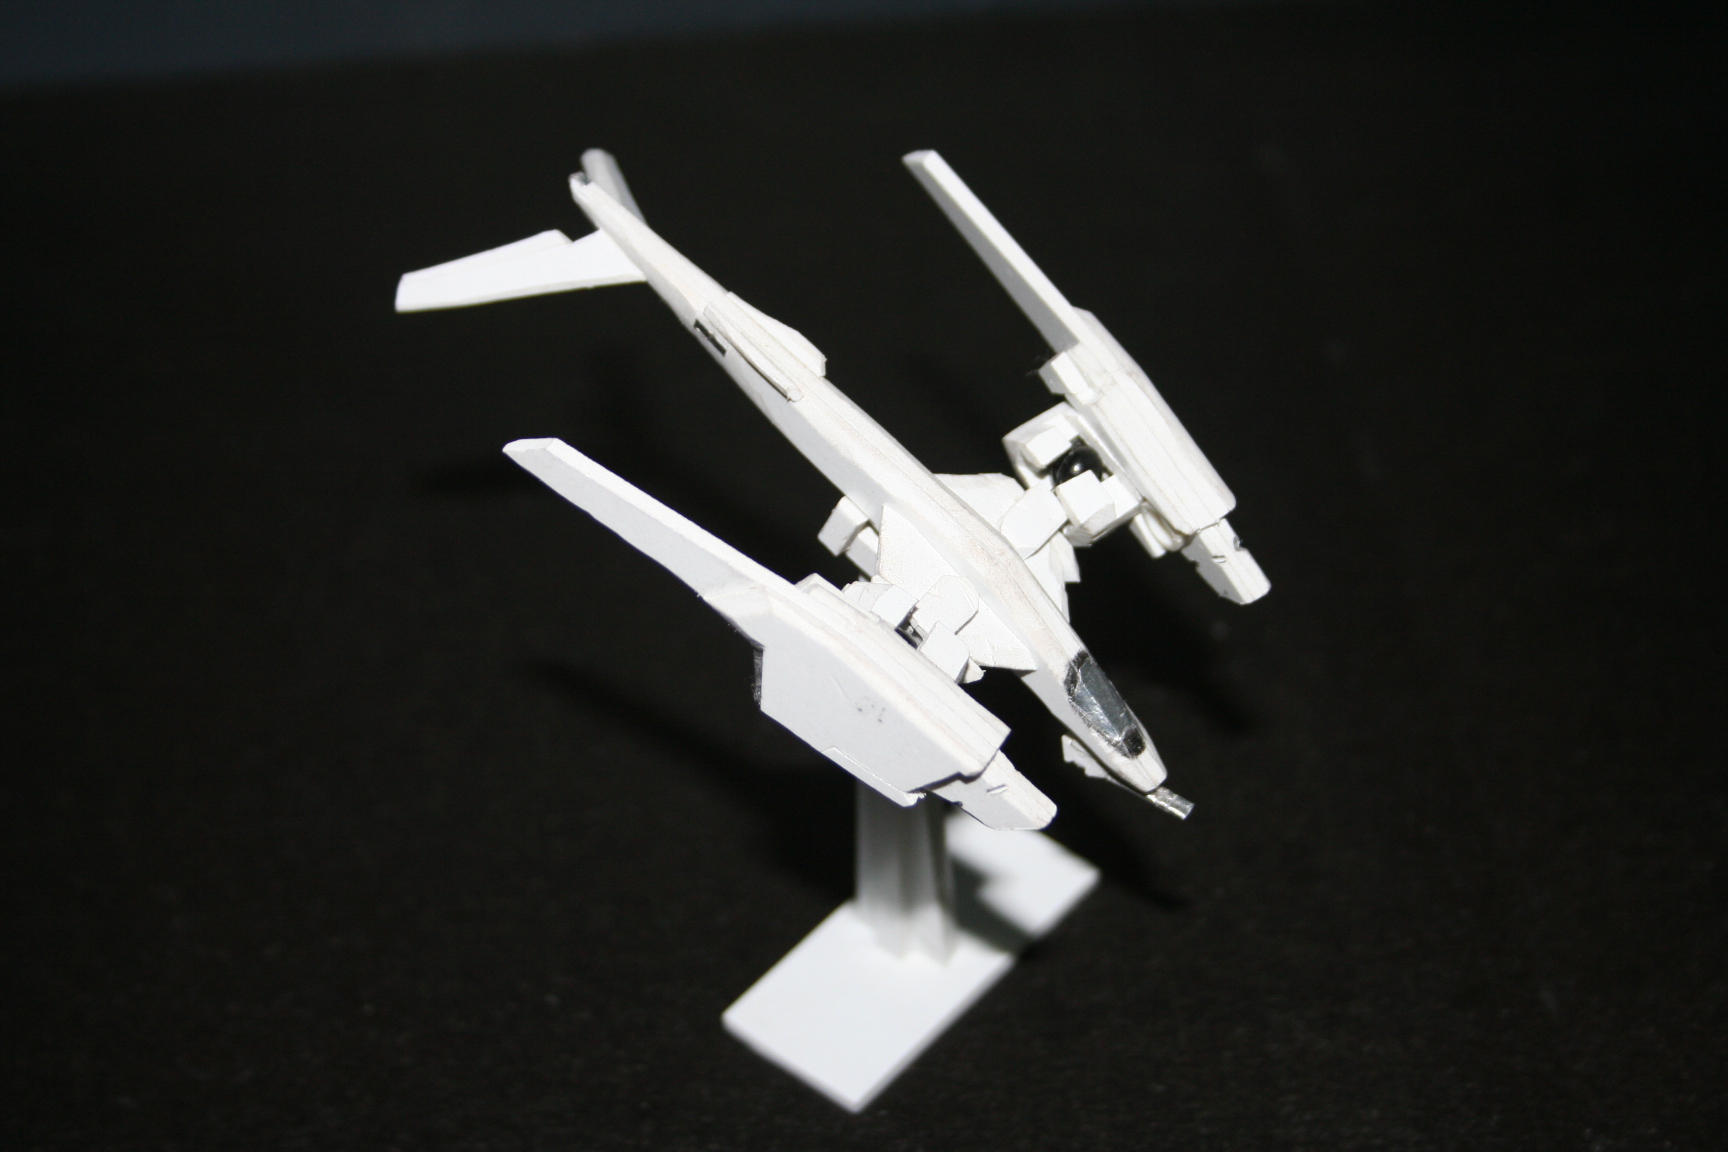 PROTOTYPE GUNSHIP by ARMAMENTFACTORY